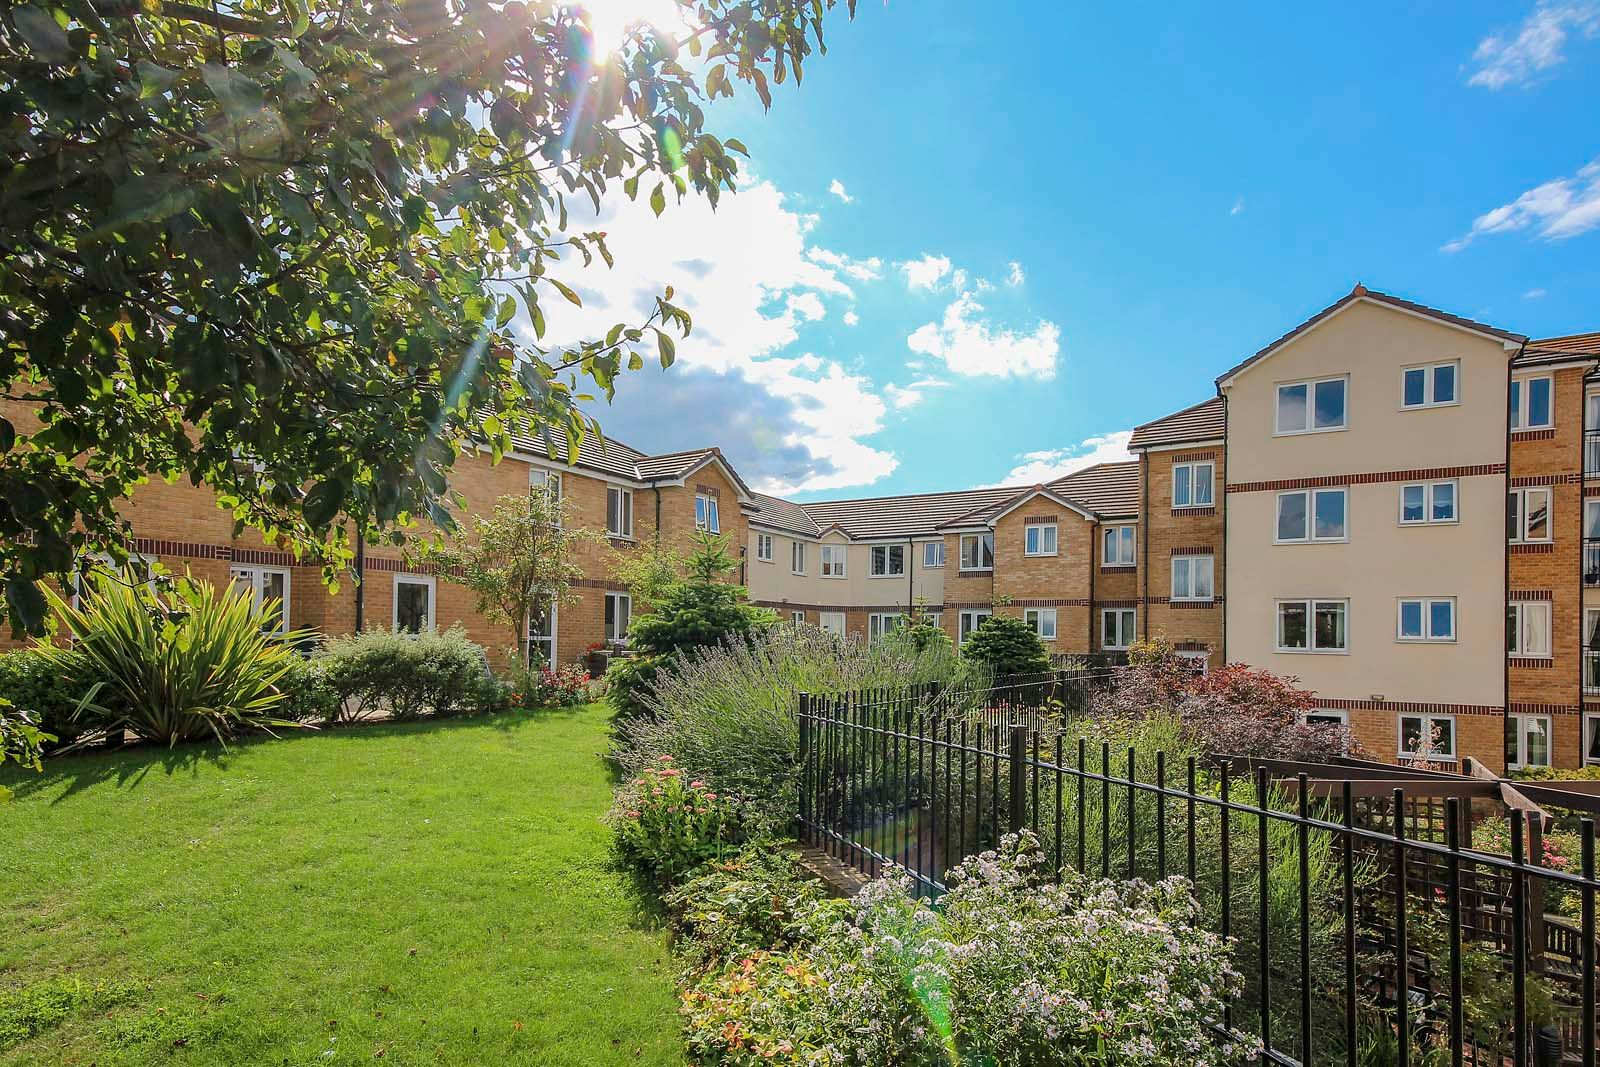 2 bed for sale in East Preston - Communal gardens (Property Image 2)